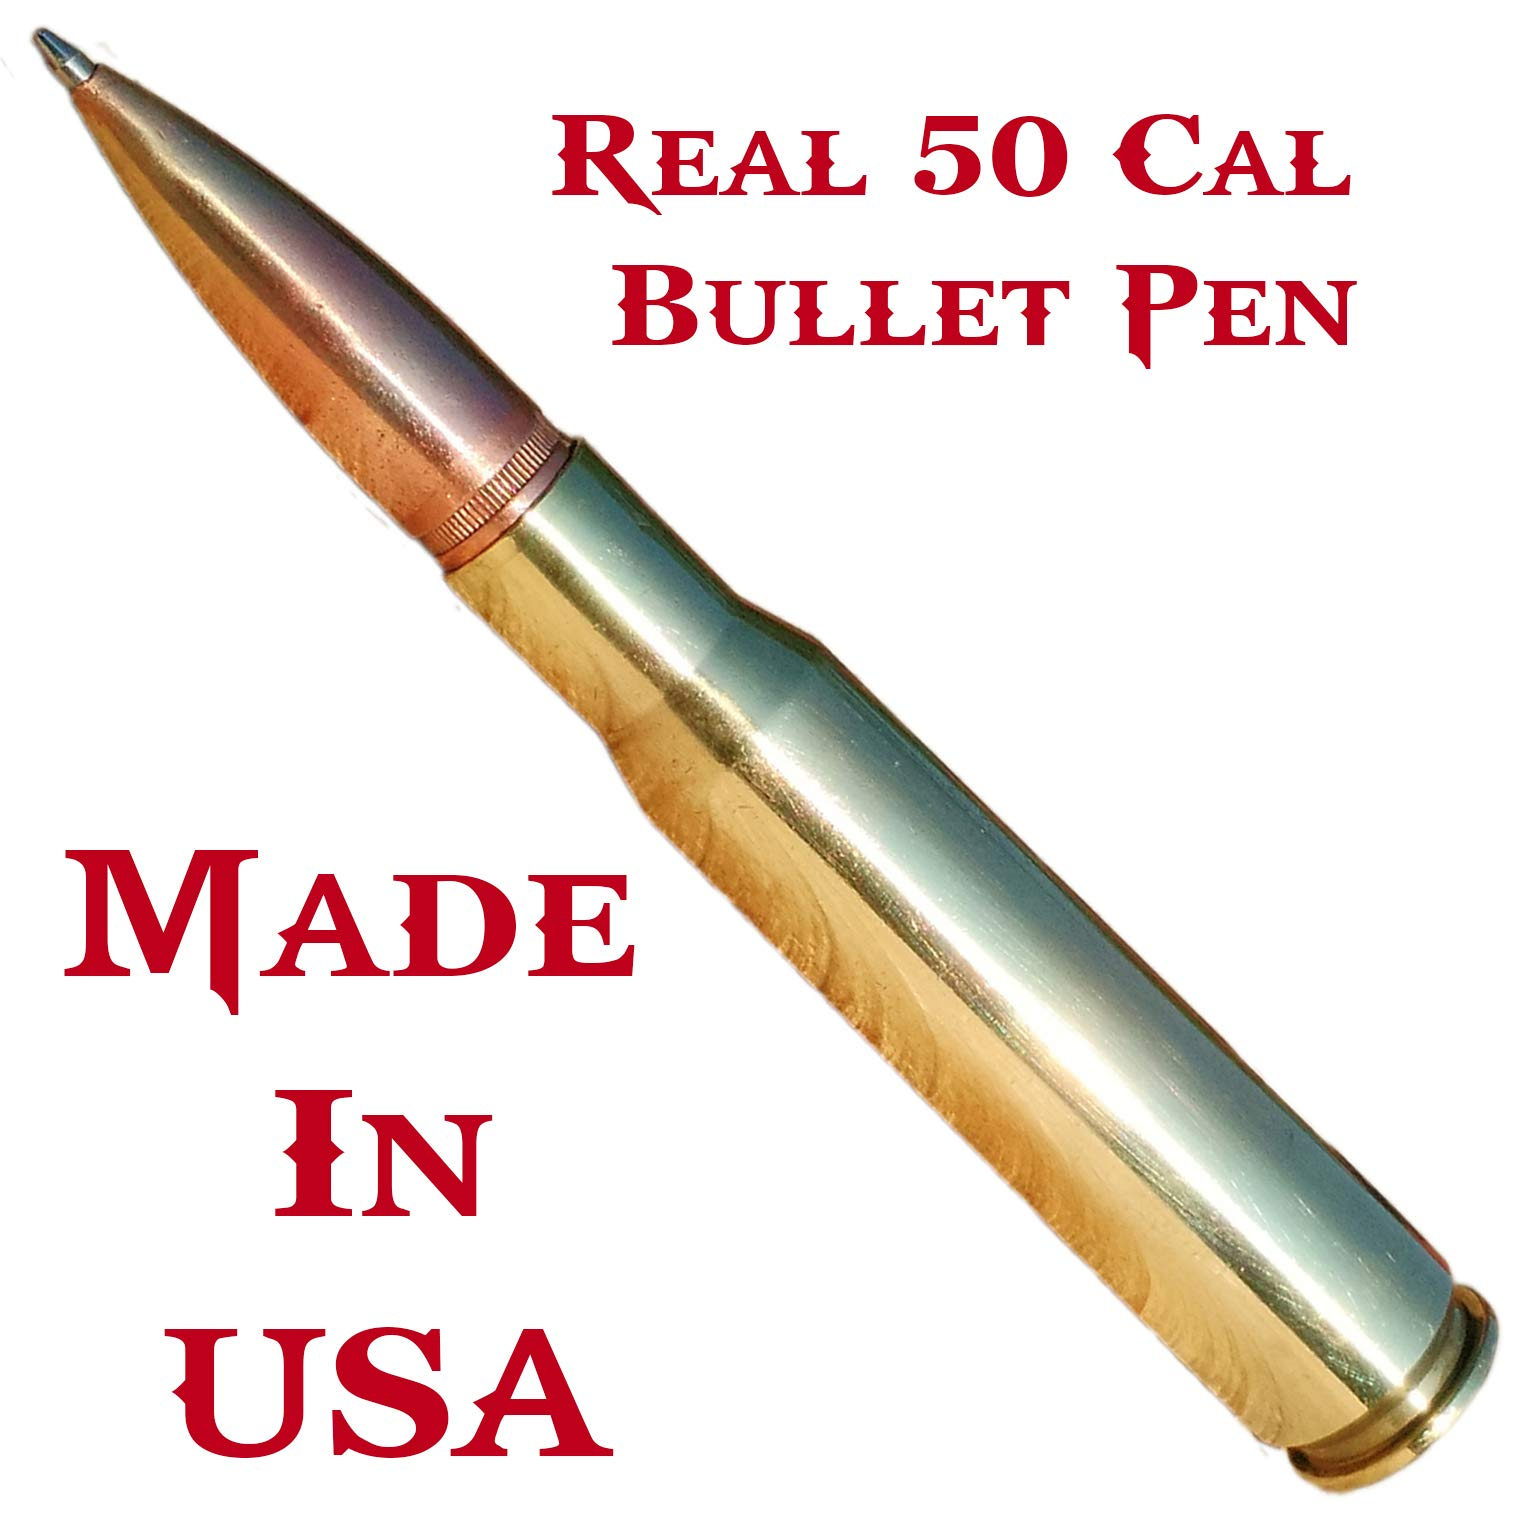 Anniversary Gifts For Men   50 Caliber Bullet Pen   Made In USA   Custom Engraved Personalized Box by Brass Honcho (Image #3)